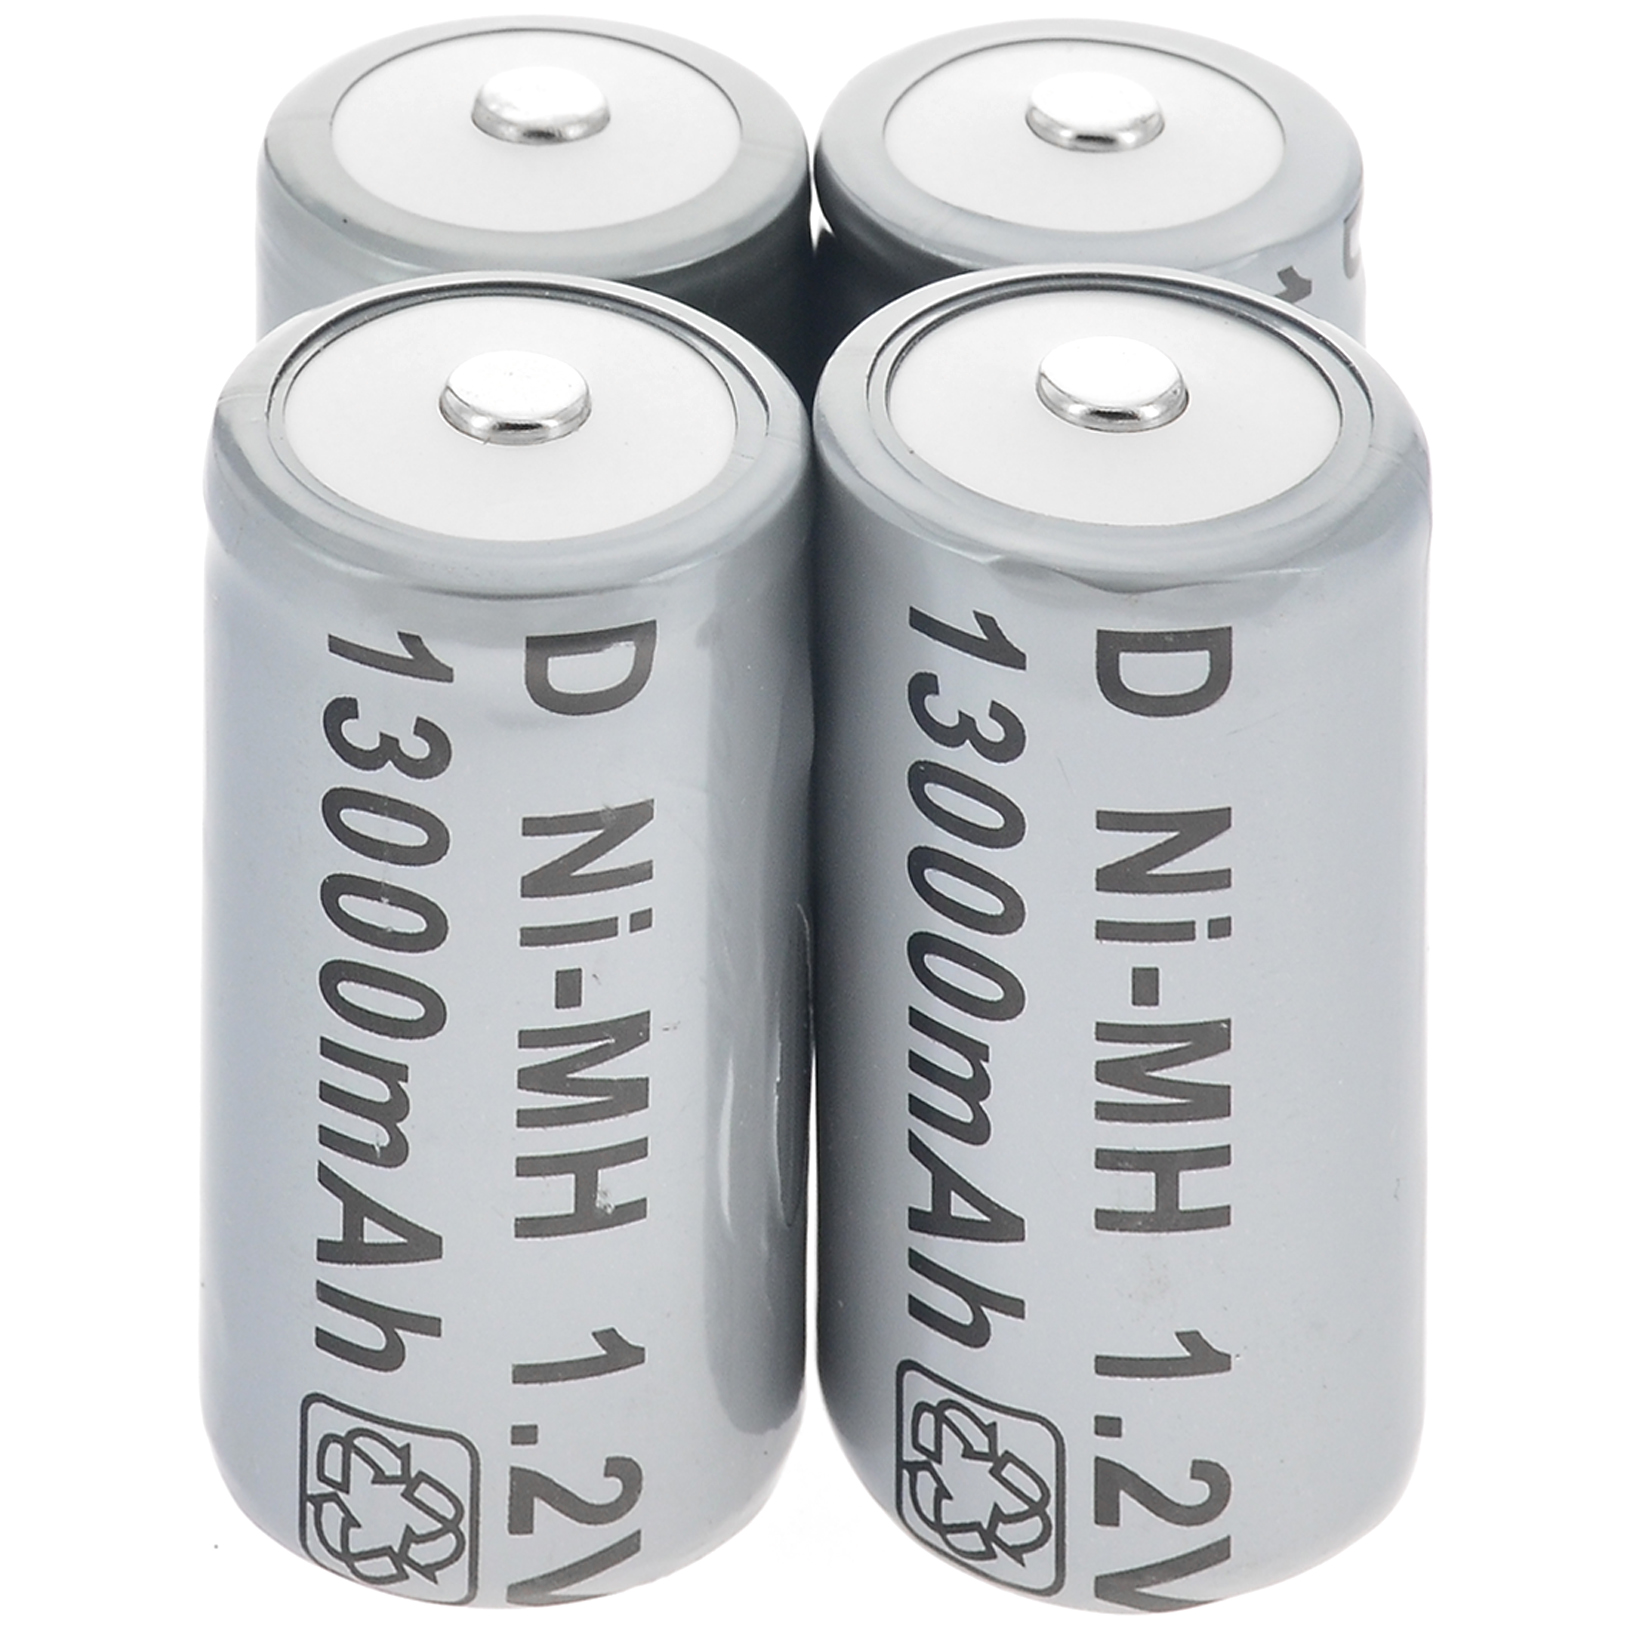 1/2/4/8/10/16pcs <font><b>1.2V</b></font> <font><b>Ni</b></font>-<font><b>MH</b></font> 13000mAh Rechargeable <font><b>Battery</b></font> Cell Grey D Size D-Type D Type image